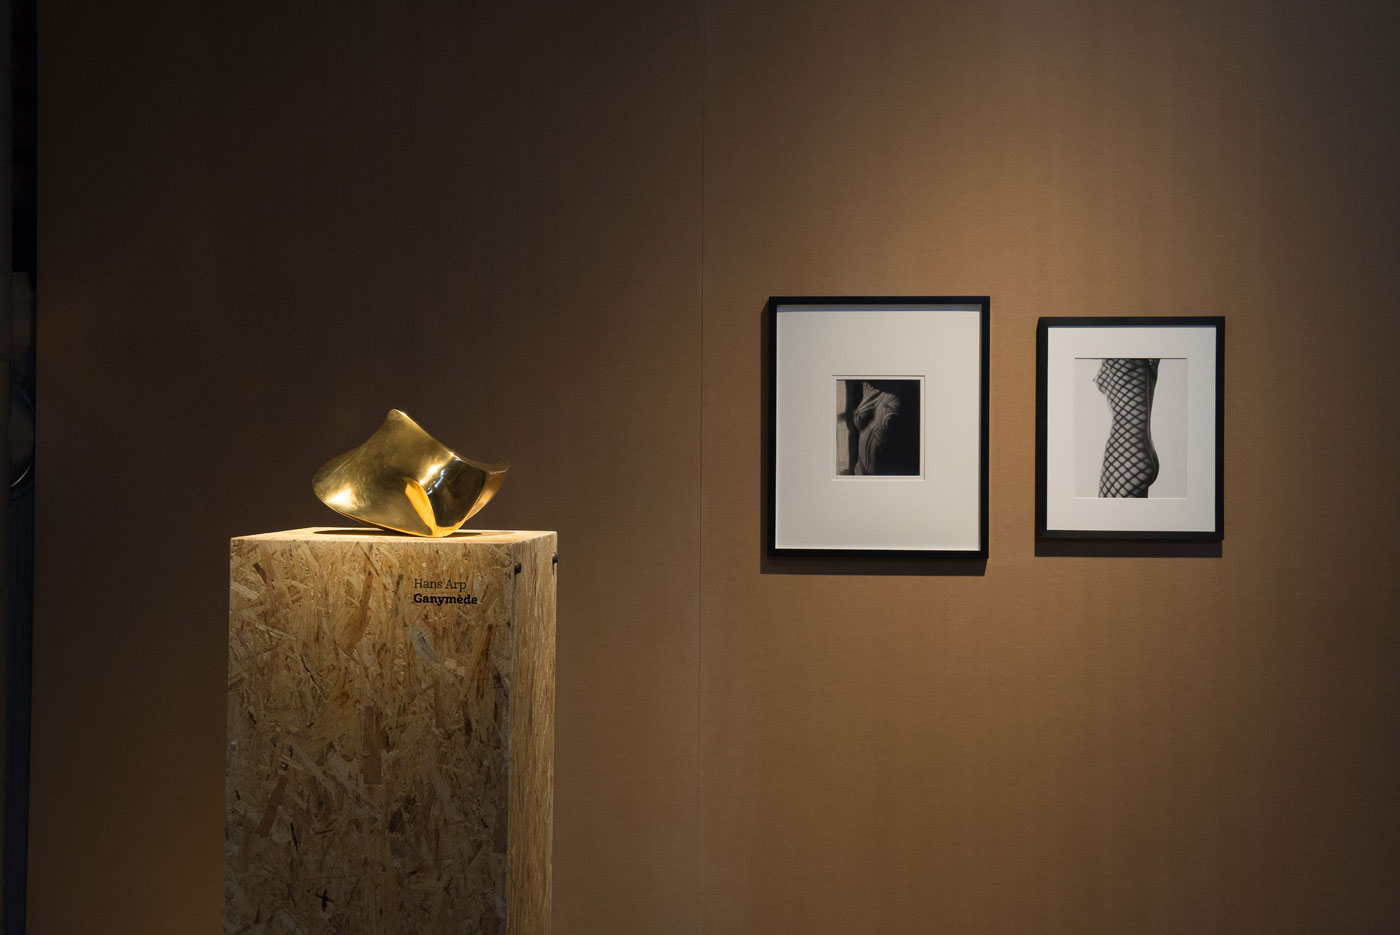 Blue Moon 08: Exhibition view with works by Hans Arp and Man Ray